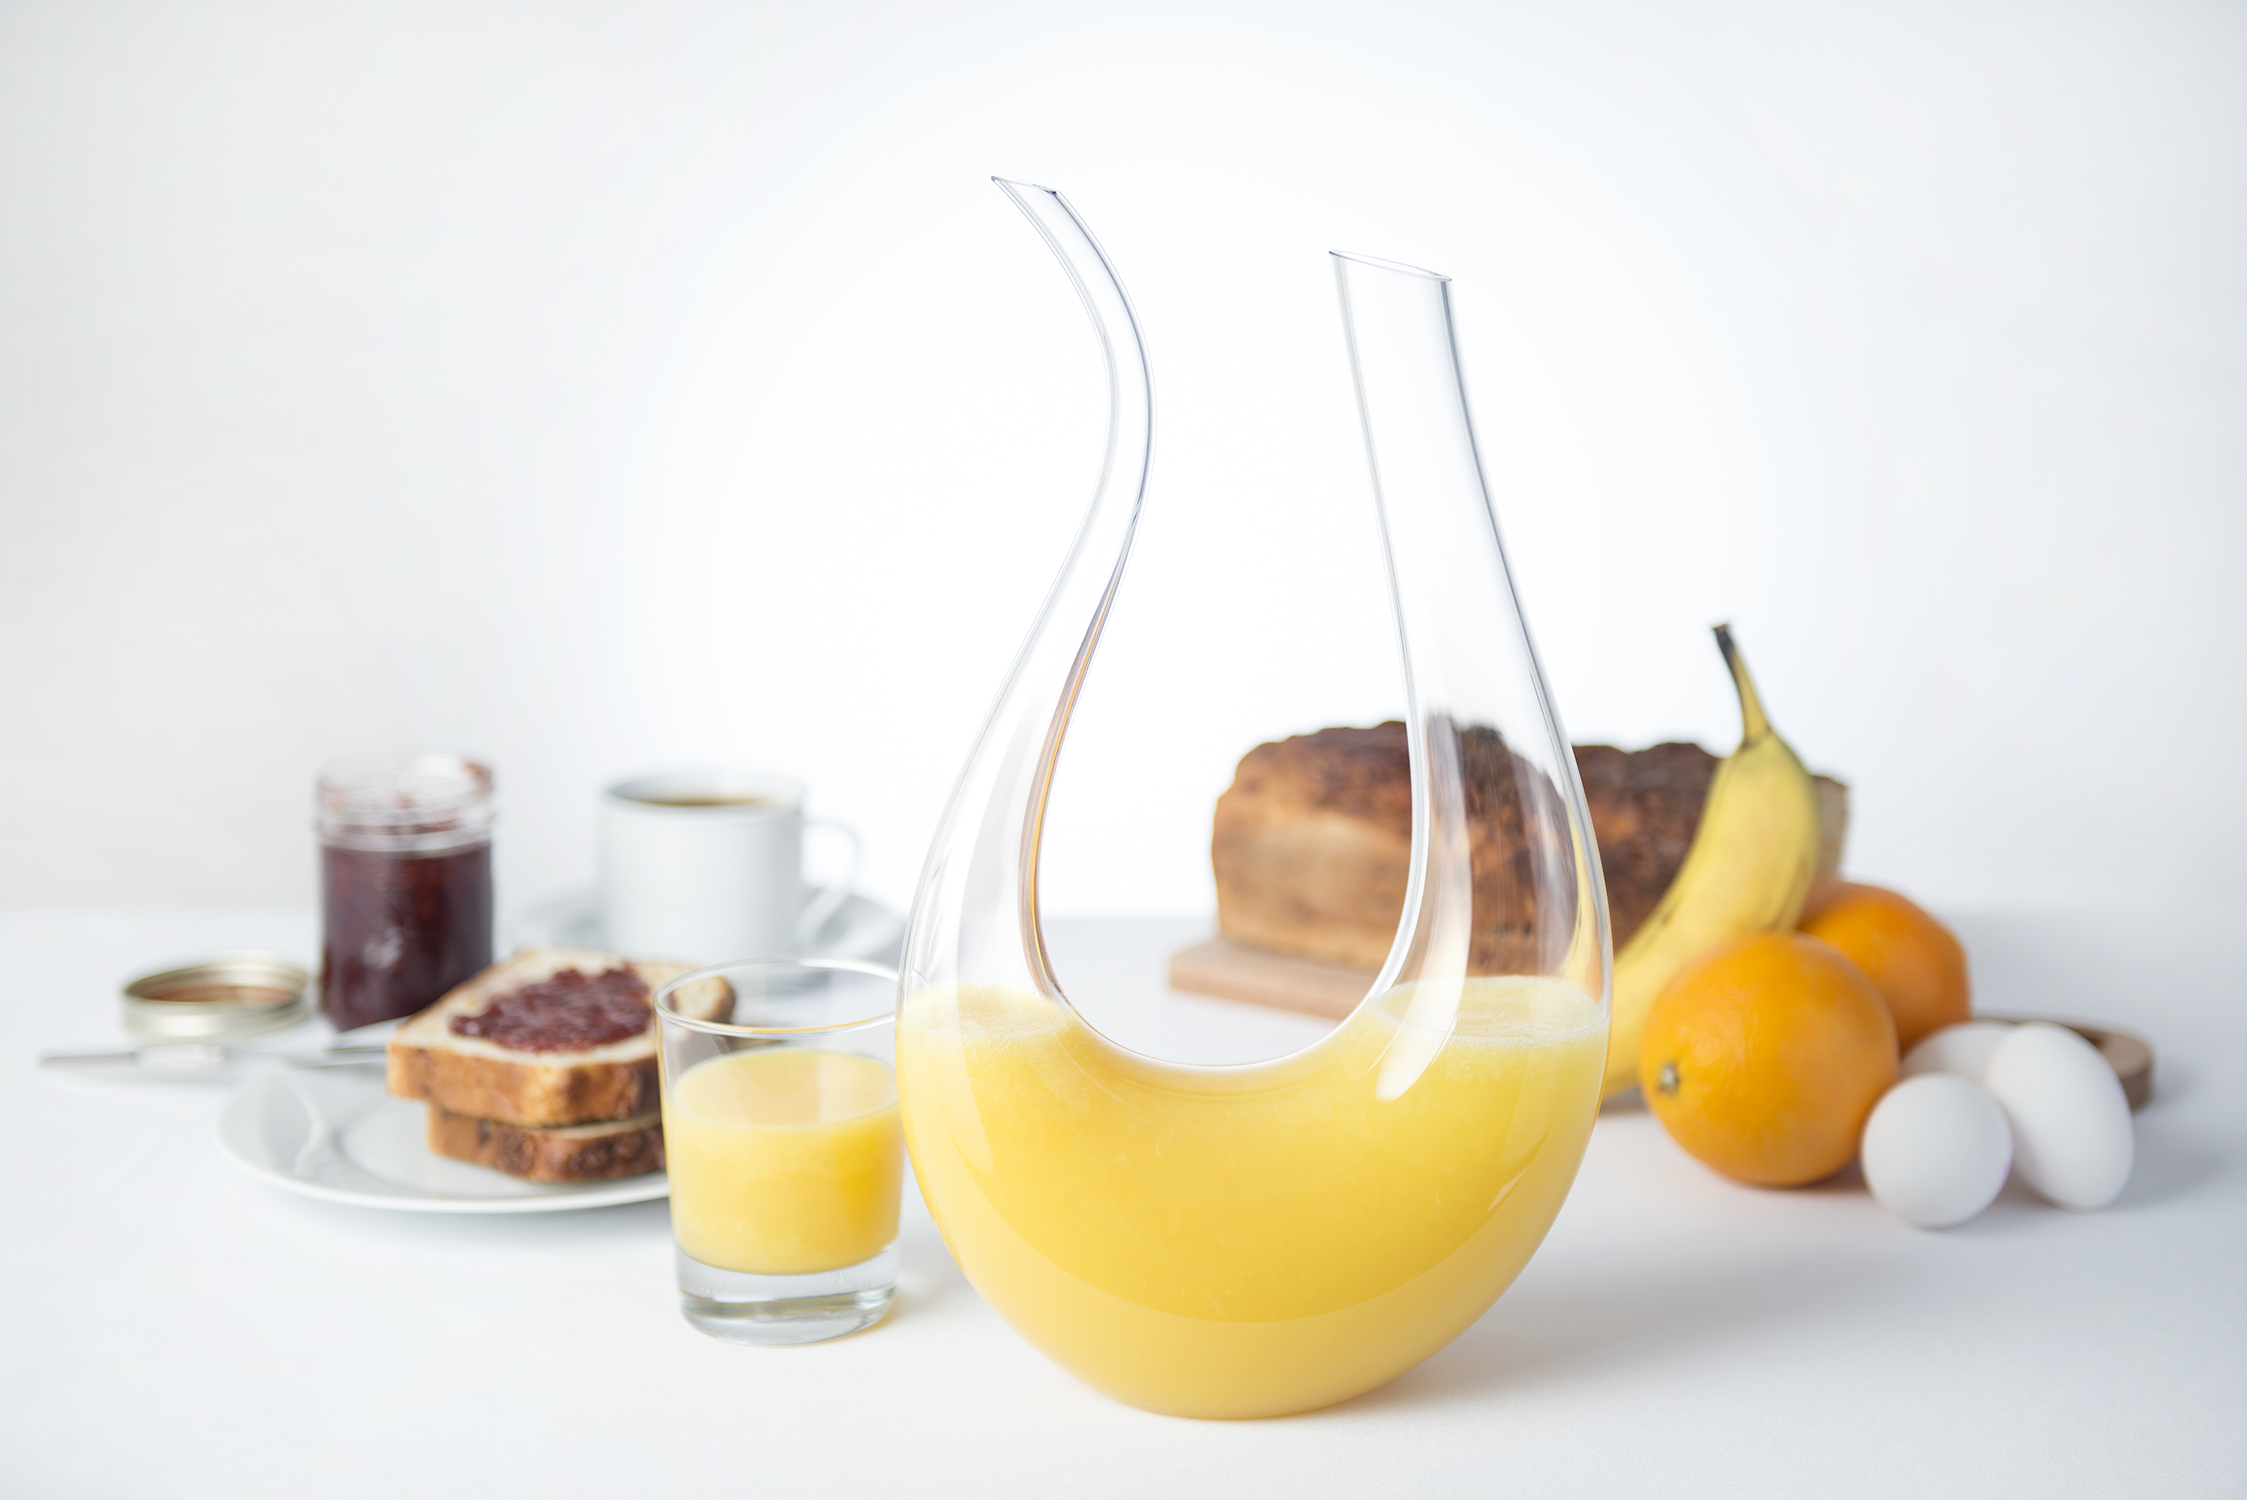 Orange-Juice-Decanter.jpg